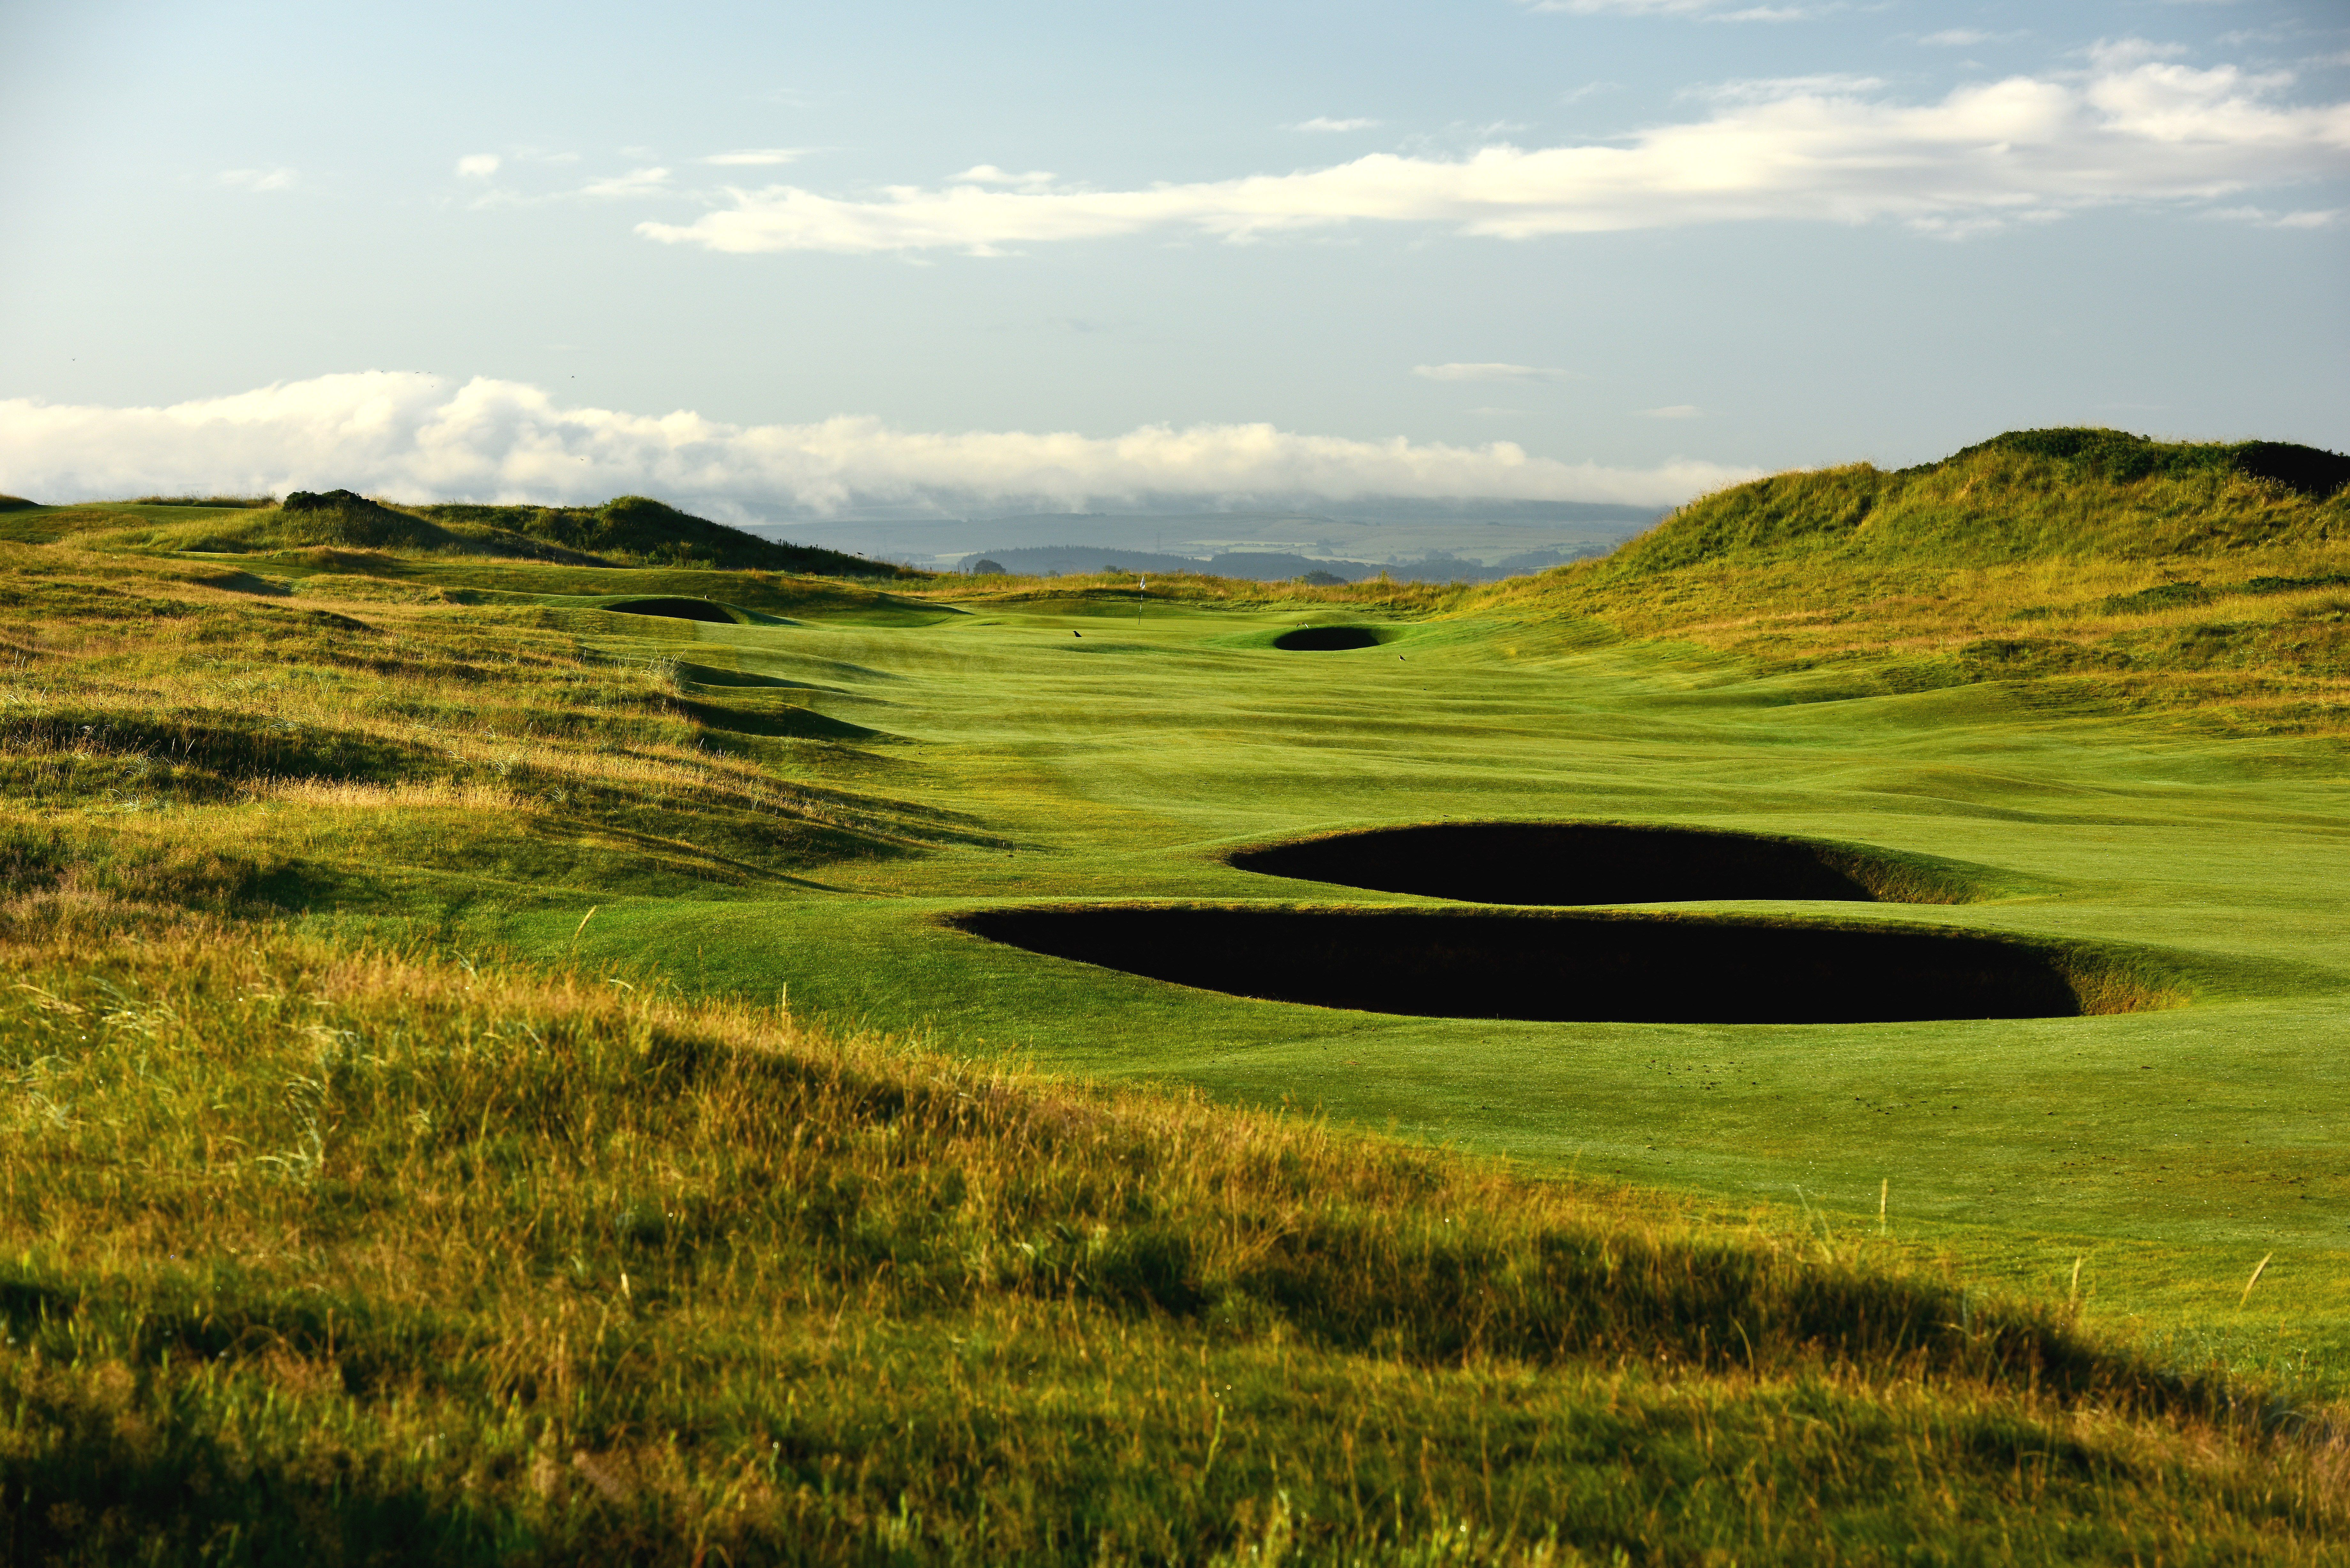 The 601 yards par 5, 6th hole Turnberry on the Old Course at Royal Troon